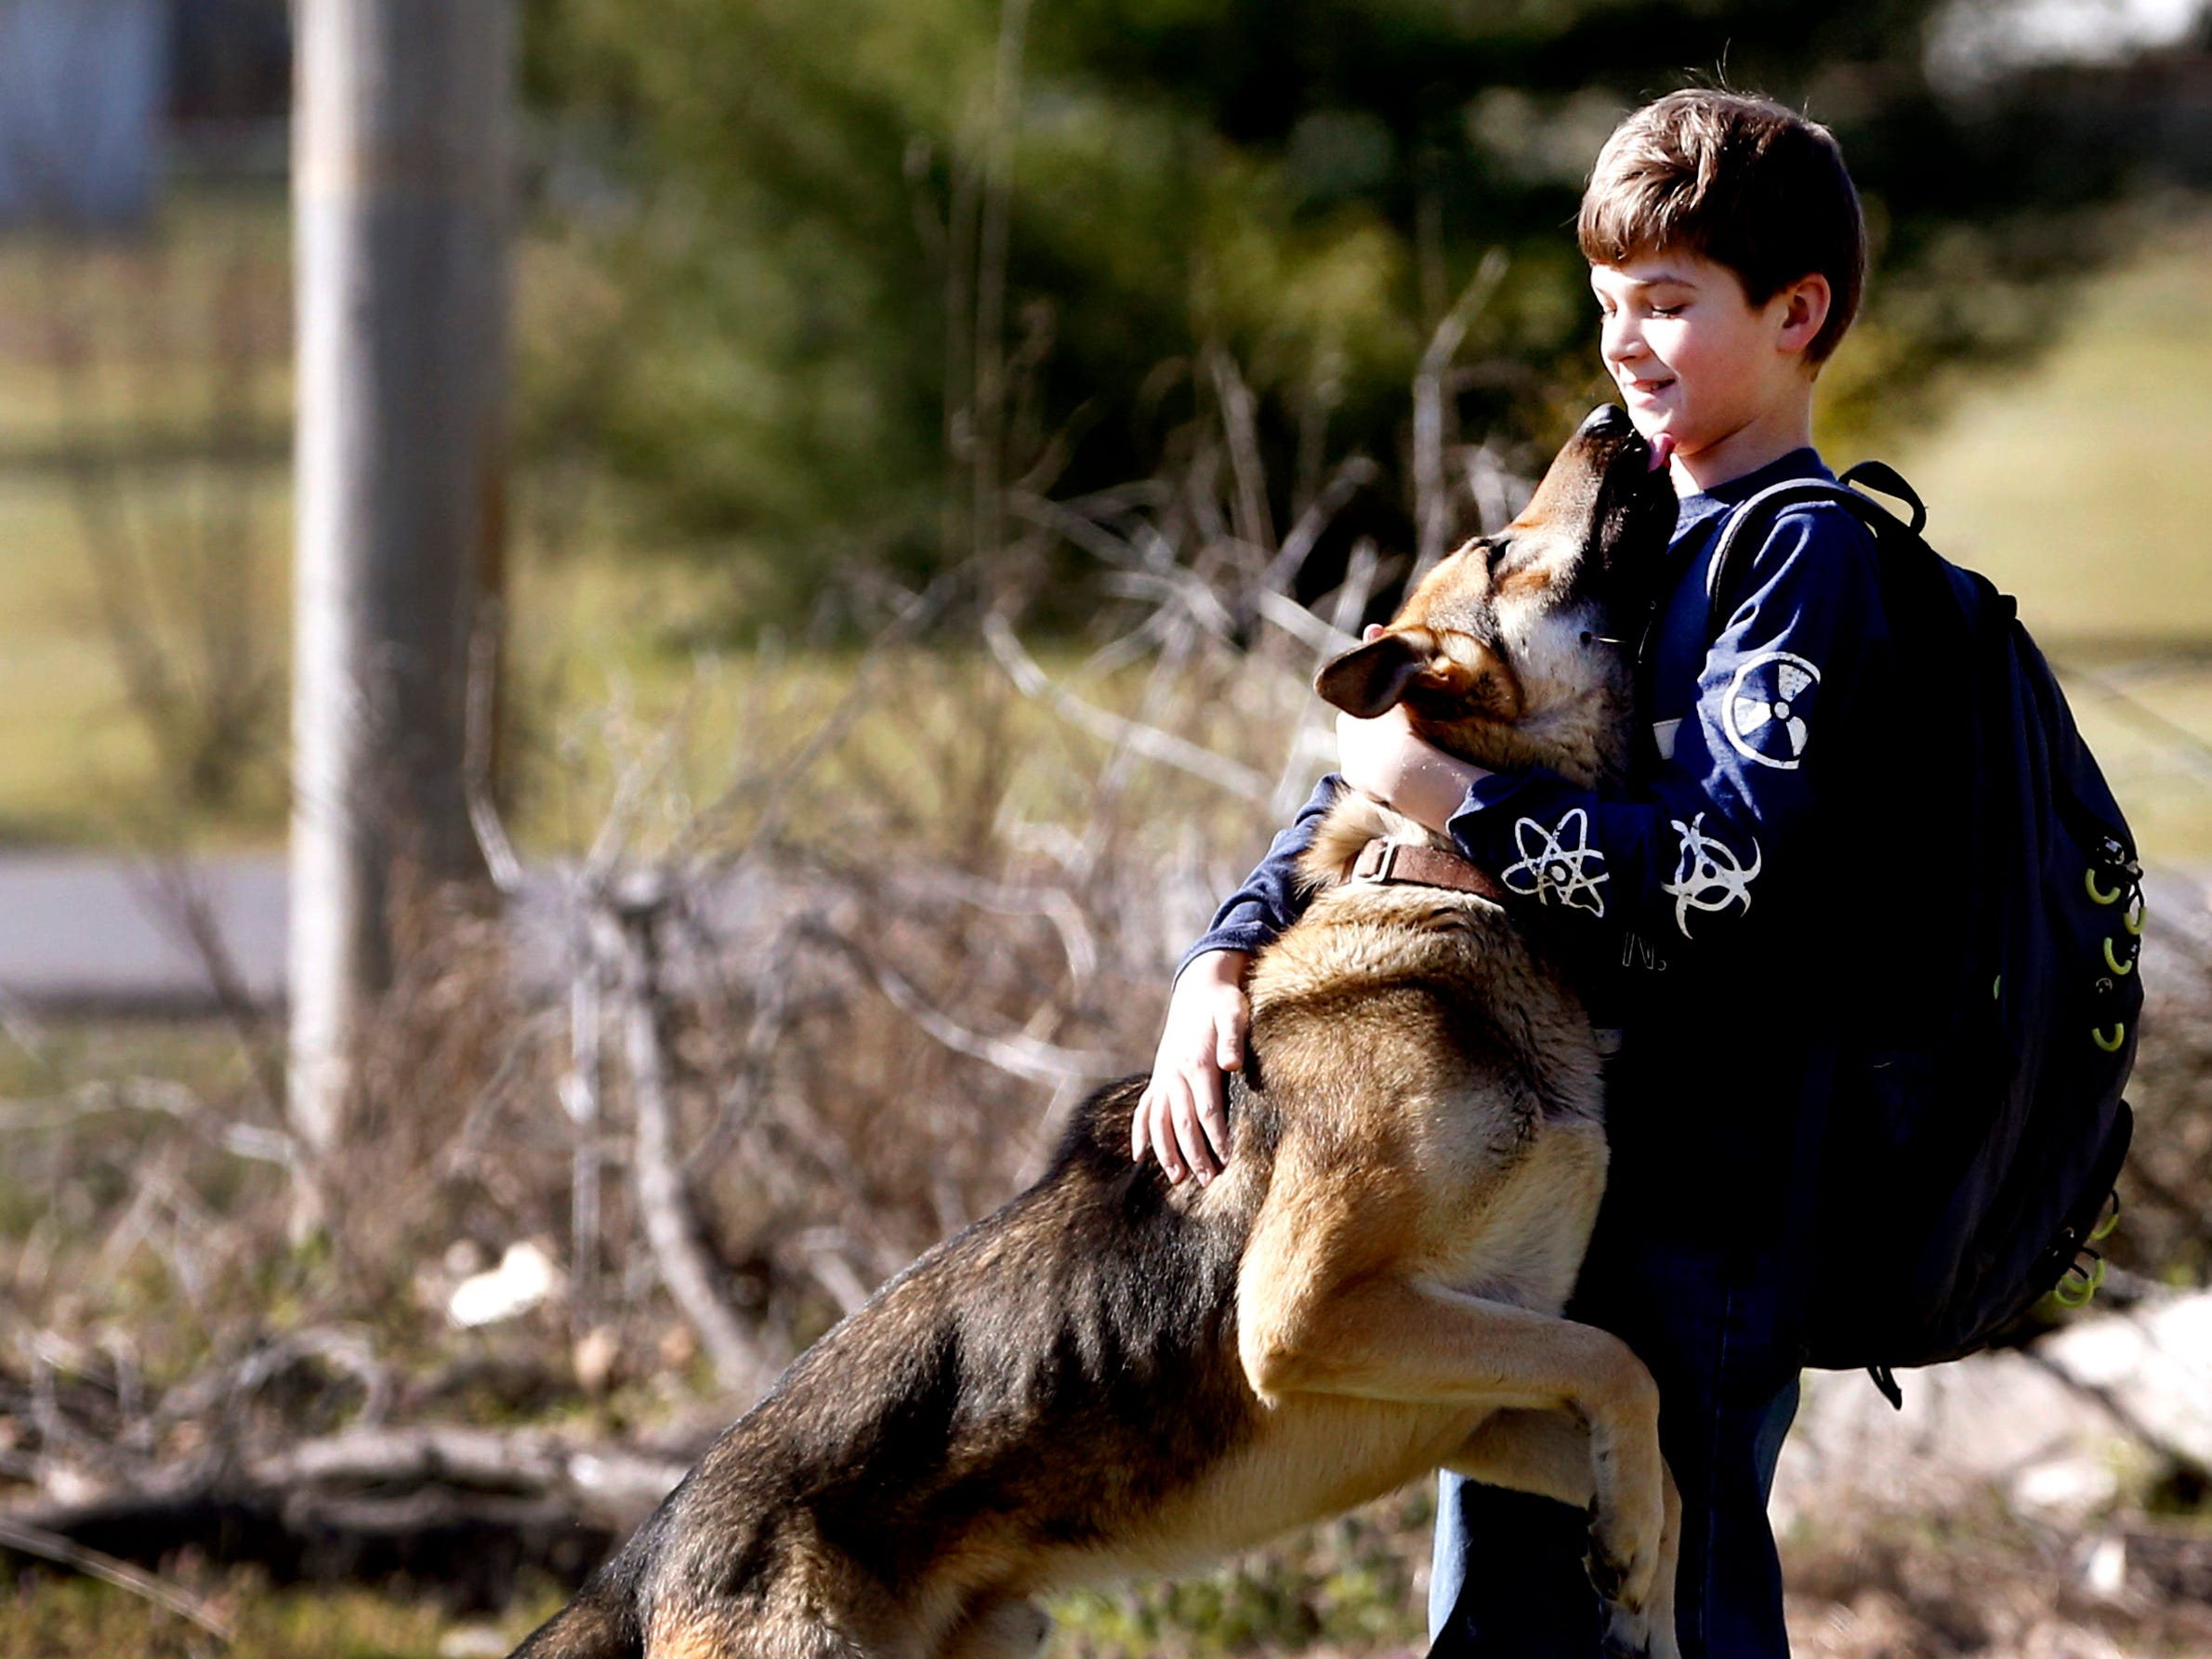 Justin White, 10, is surprised as he is greeted by his dog Goblin on Tuesday, March 19, 2019, after Goblin had been officially reported missing from the family's Christiana home since March 10.